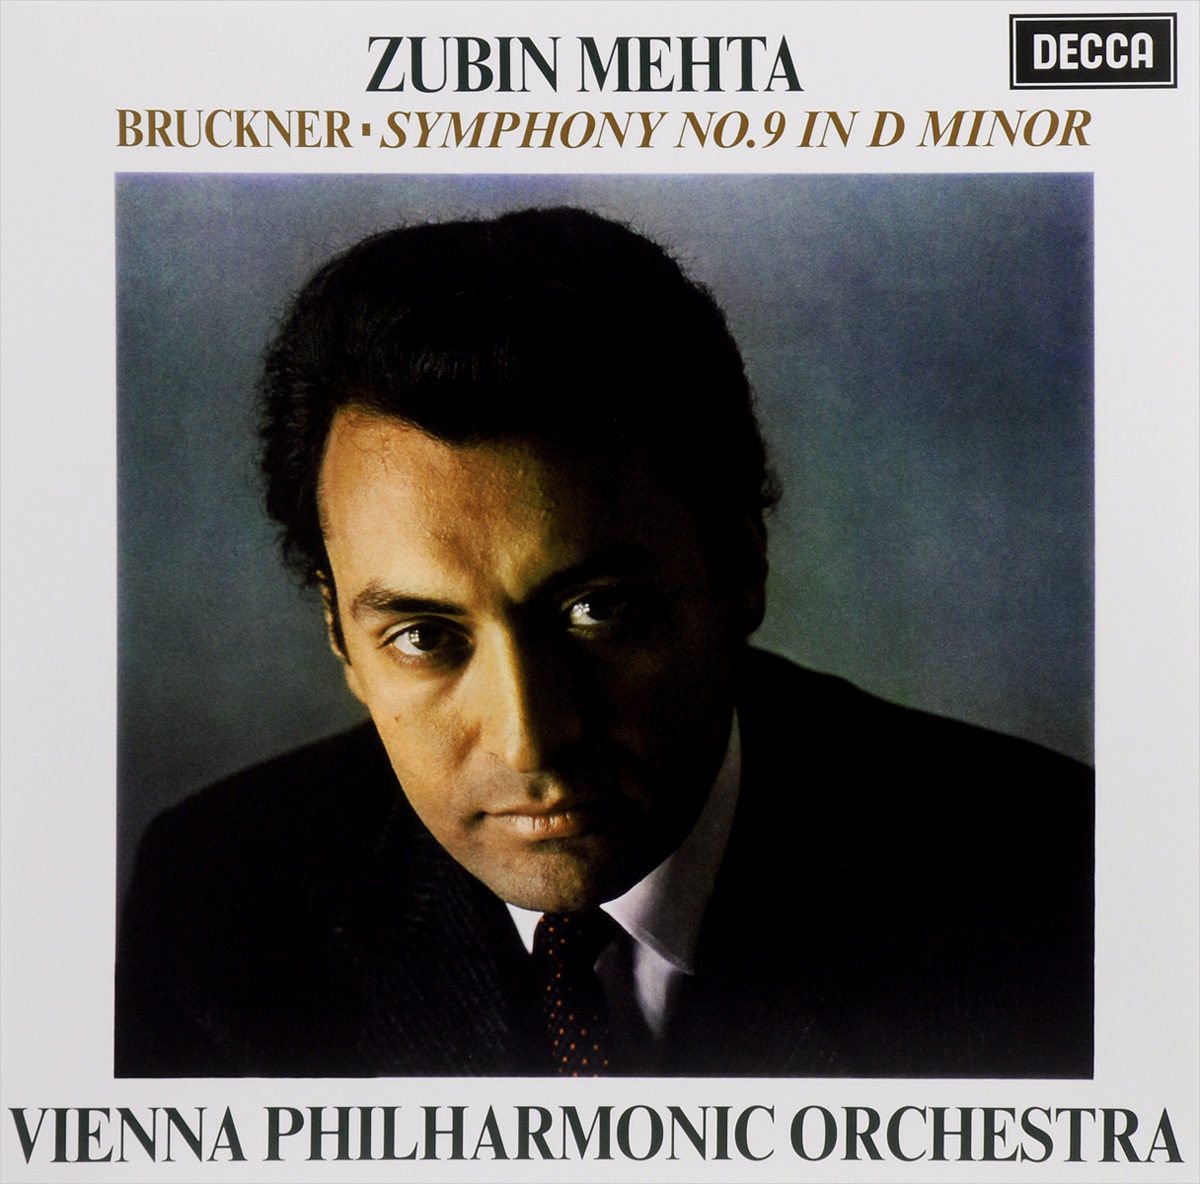 Vienna Philharmonic Orchestra,Зубин Мета Zubin Mehta. Bruckner. Symphony No. 9 In D Minor (LP) сержи селибидаче swr stuttgard radio symphony orchestra swedish radio symphony orchestra sergiu celibidache bruckner symphonies nos 3 5